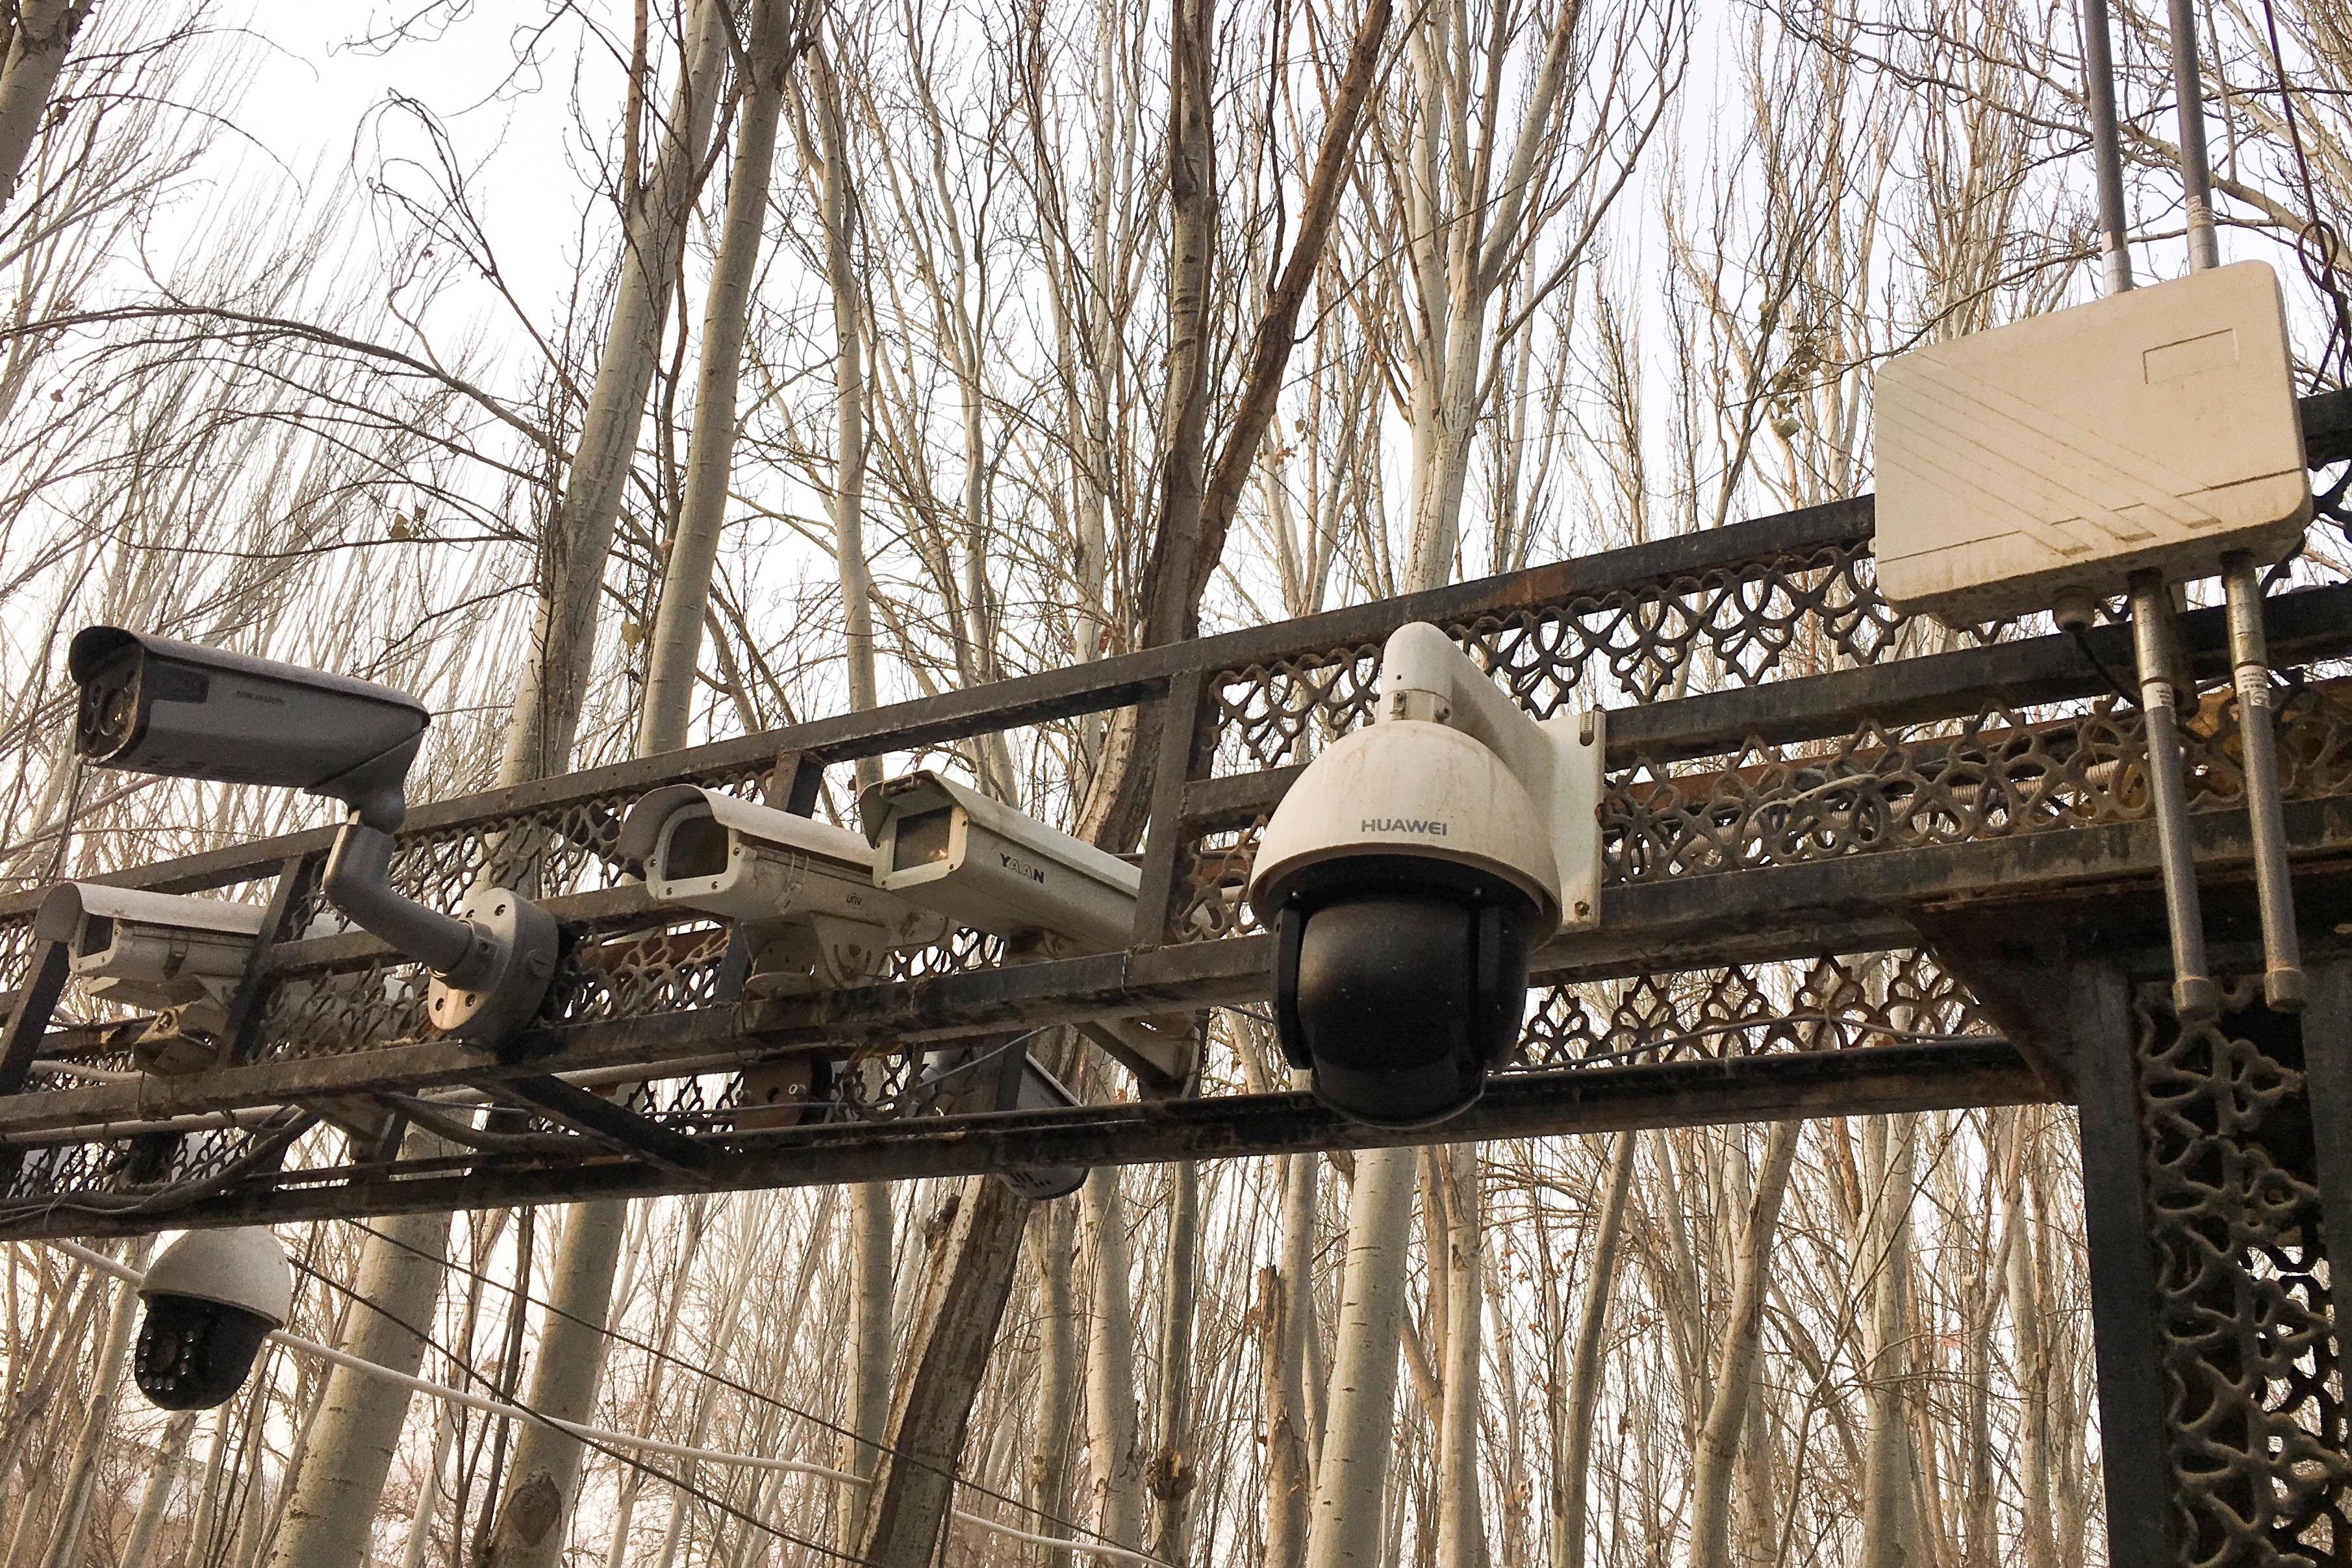 China surveillance firm tracking millions in Xinjiang: researcher